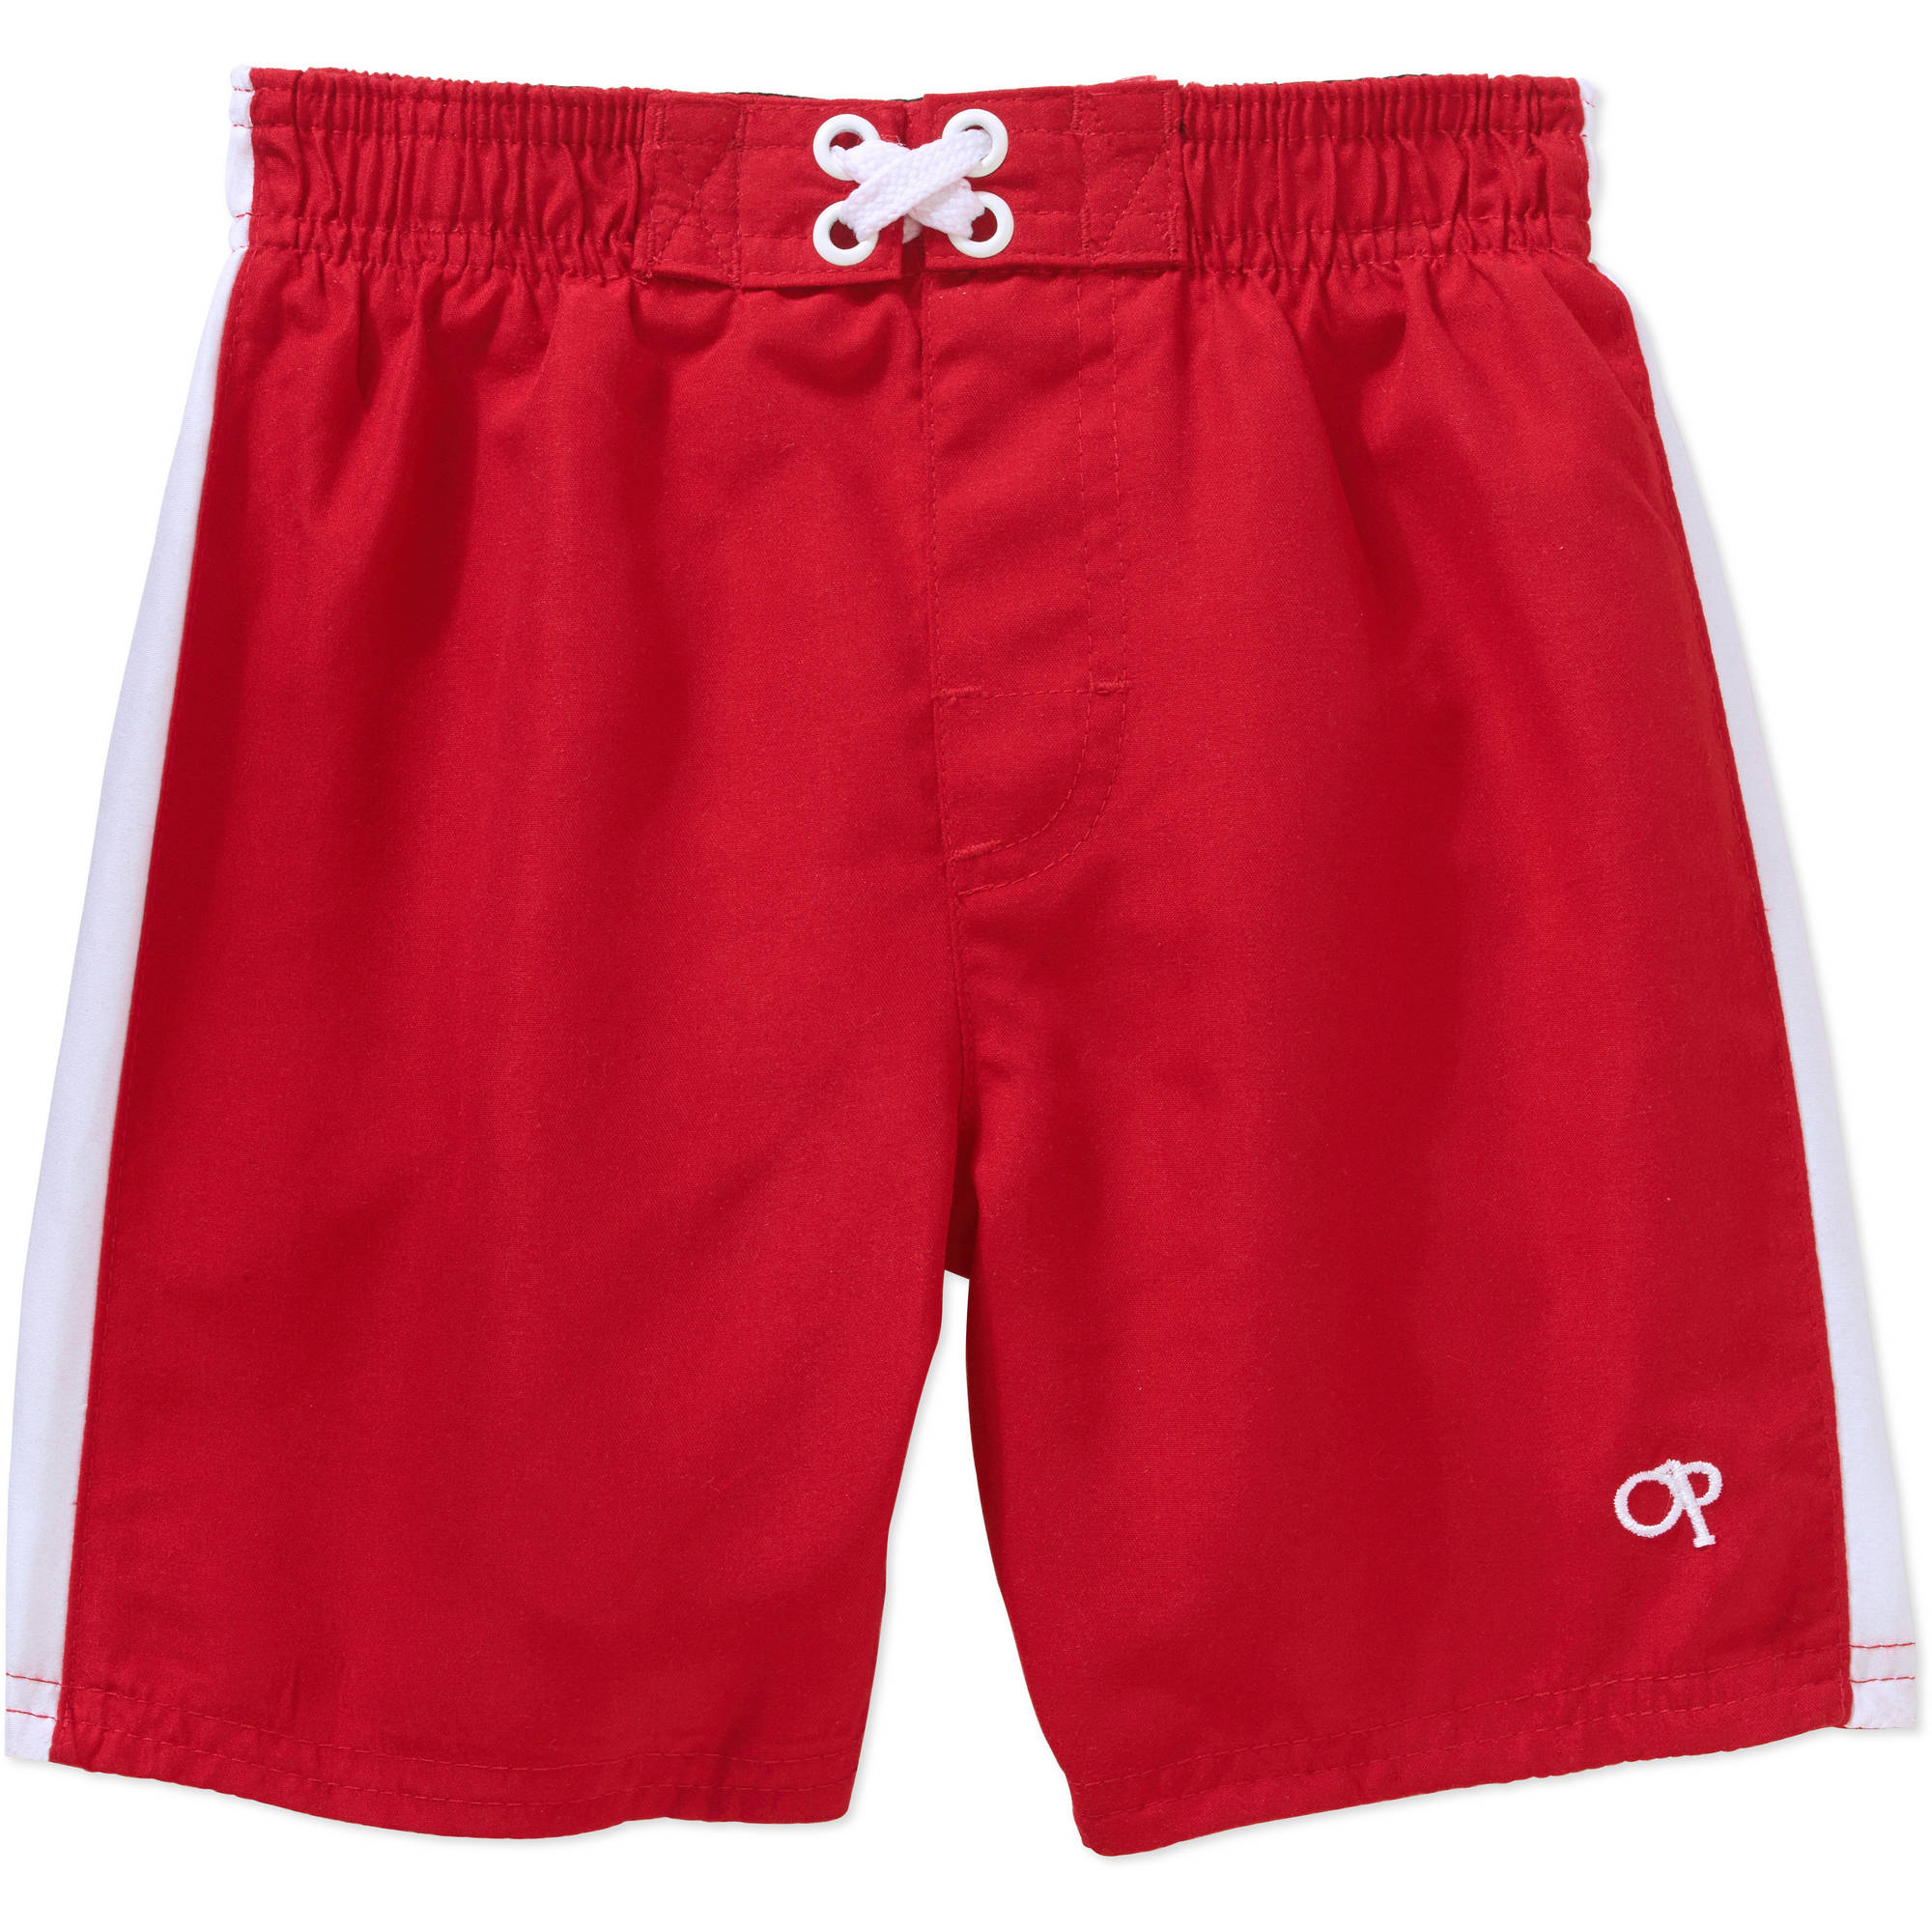 Op Baby Toddler Boy Basic Swim Trunk Shorts